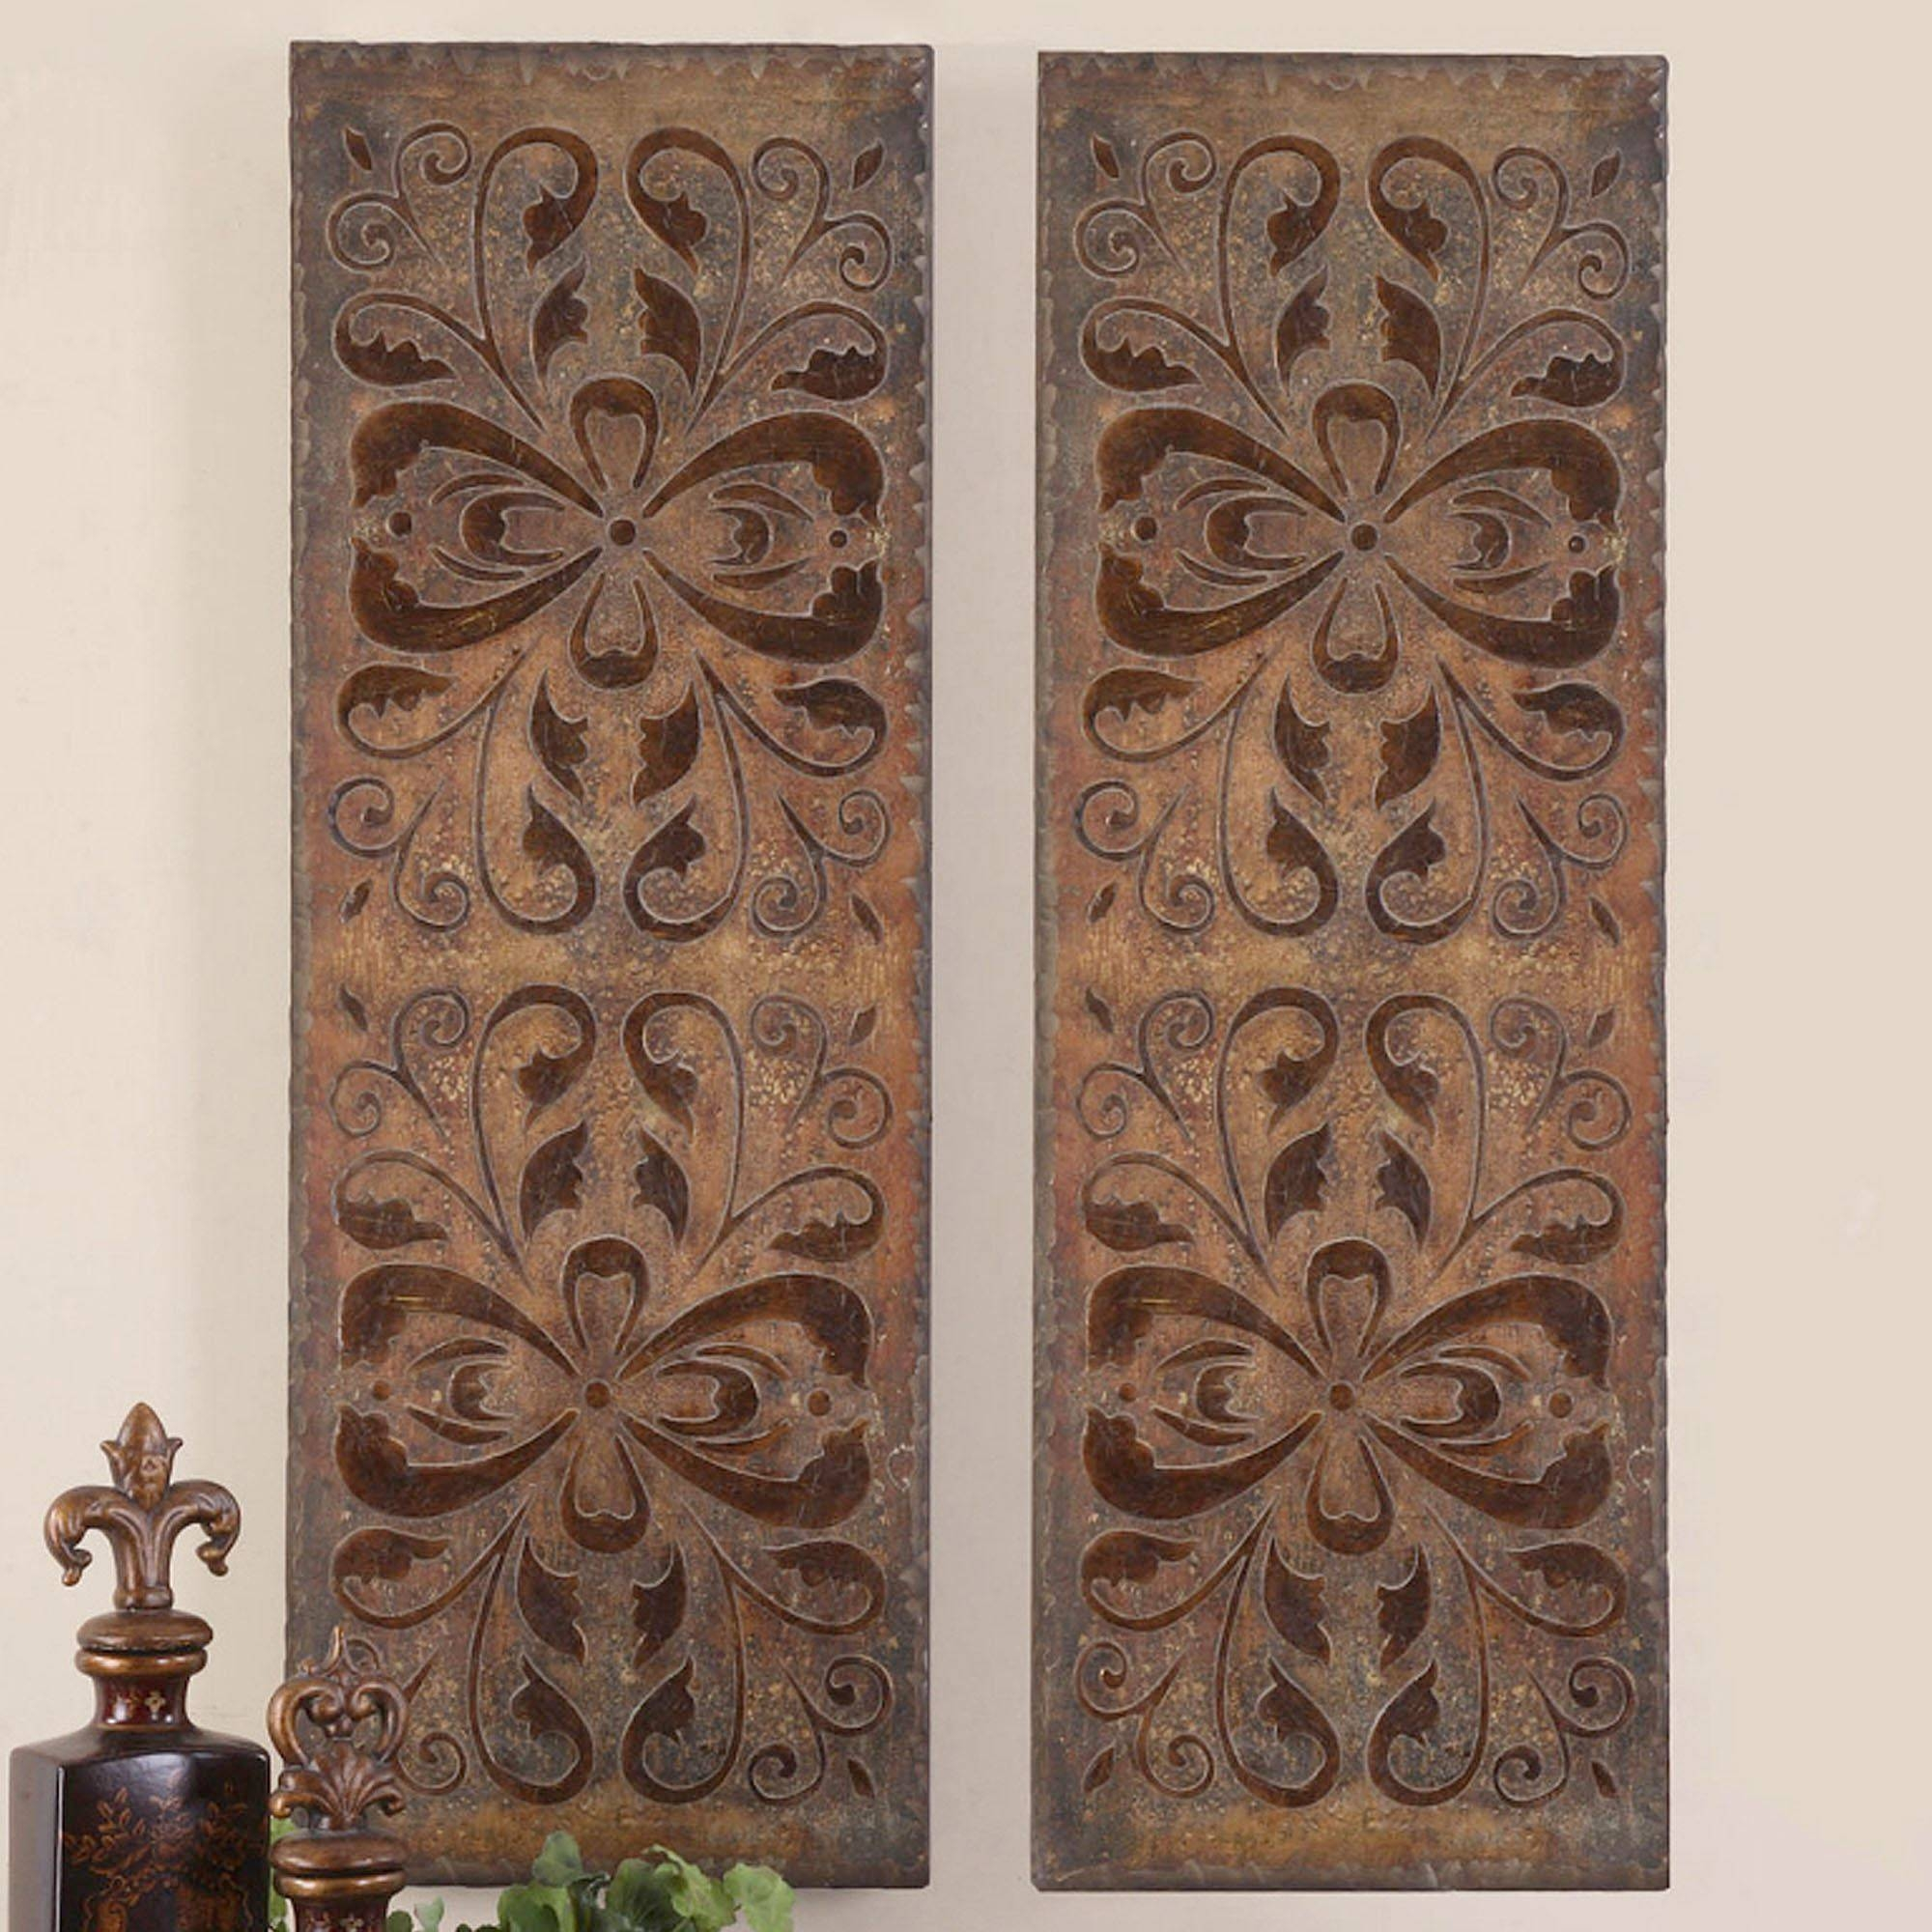 Encouraging Decorative Wall Panels Wood Decorative Wood Wall Regarding Latest Wood Panel Wall Art (View 7 of 20)